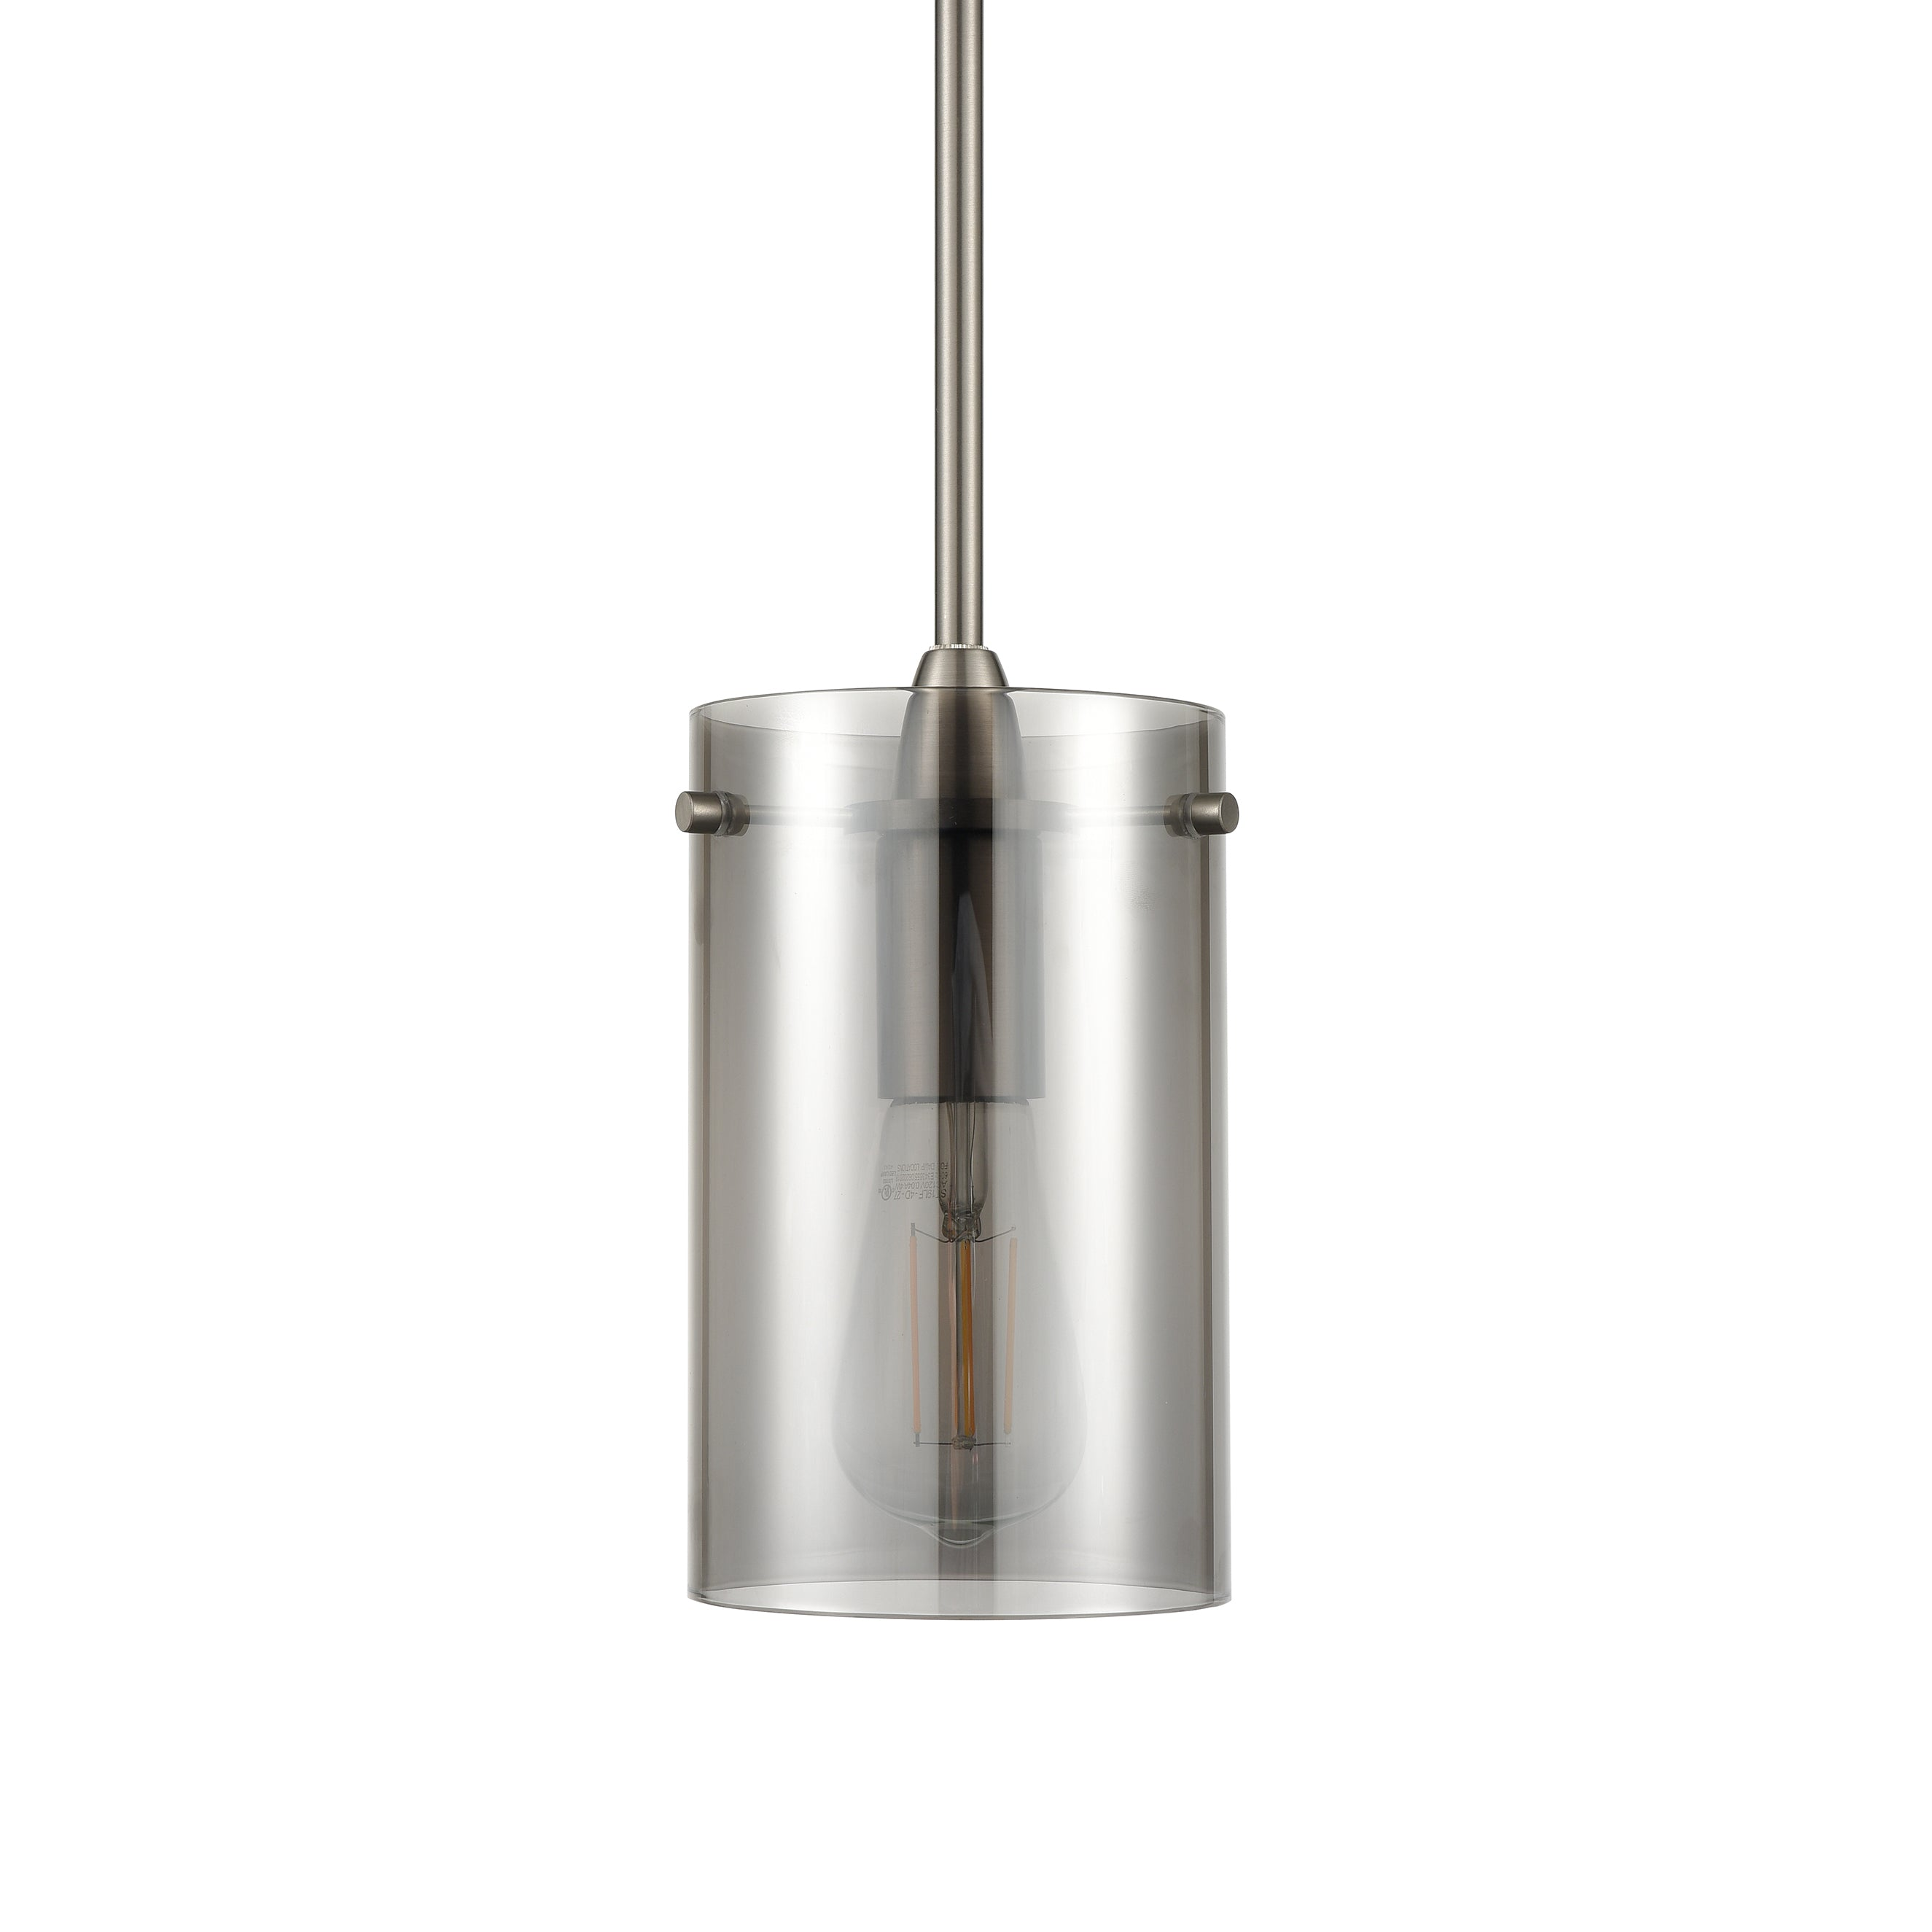 Effimero large with smoked Glass pendant lighting with no visible wiring, ideal for dining rooms and kitchens.